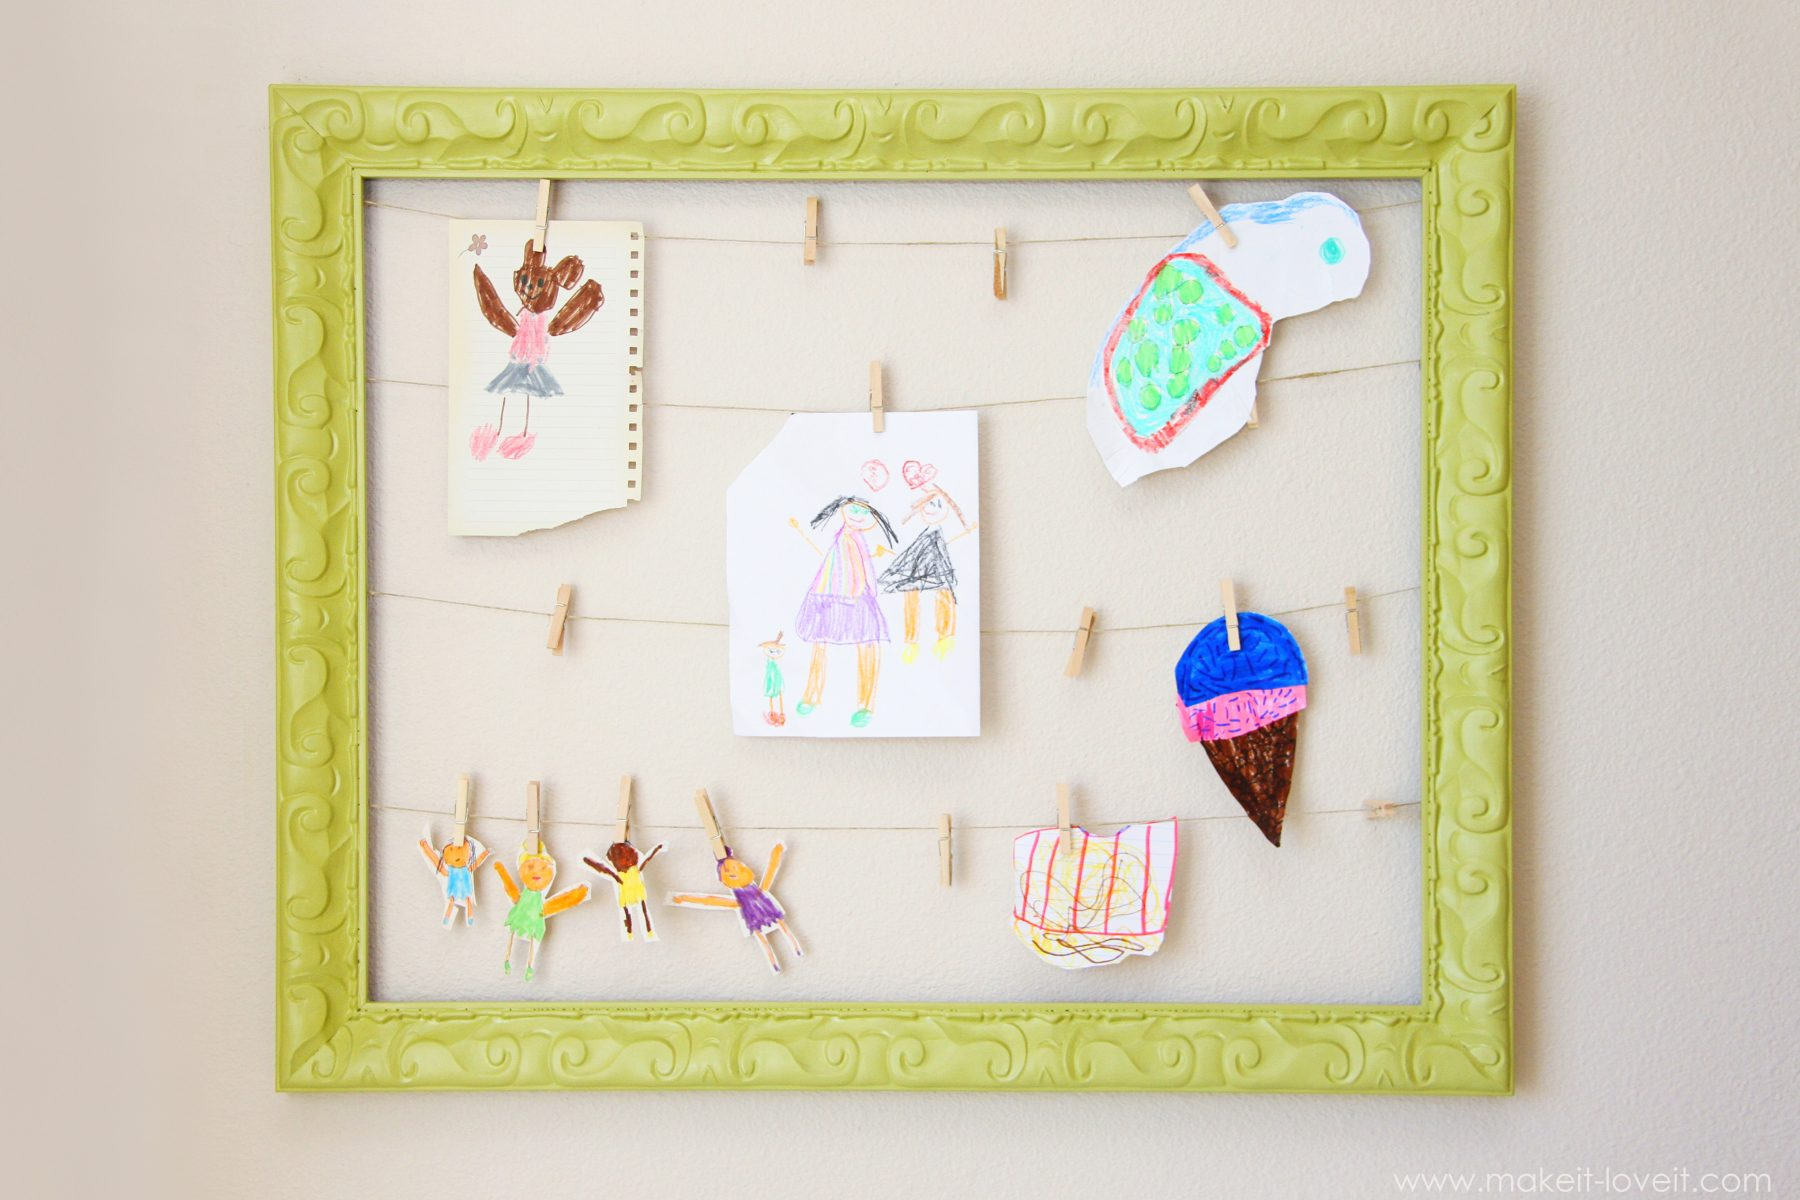 Artwork Display Frame | Make It and Love It